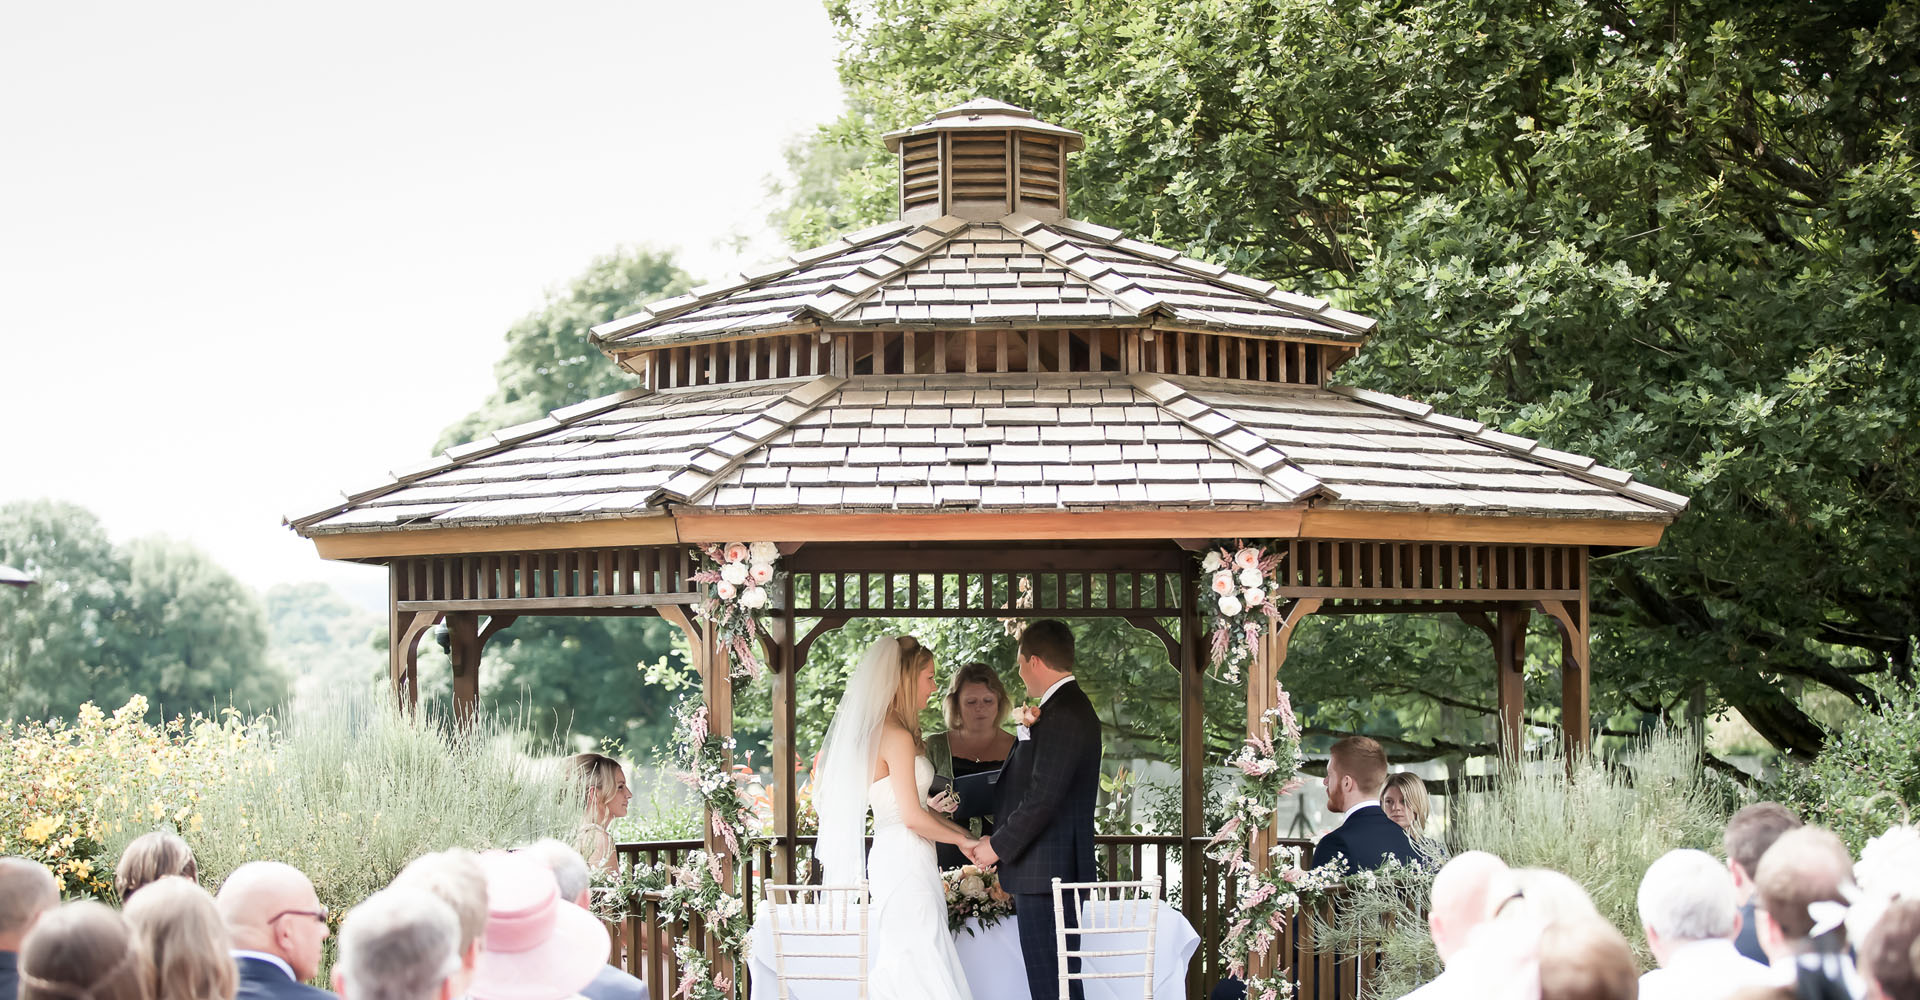 The Pavilion Wedding Venue - Outdoor Weddings, Buckinghamshire